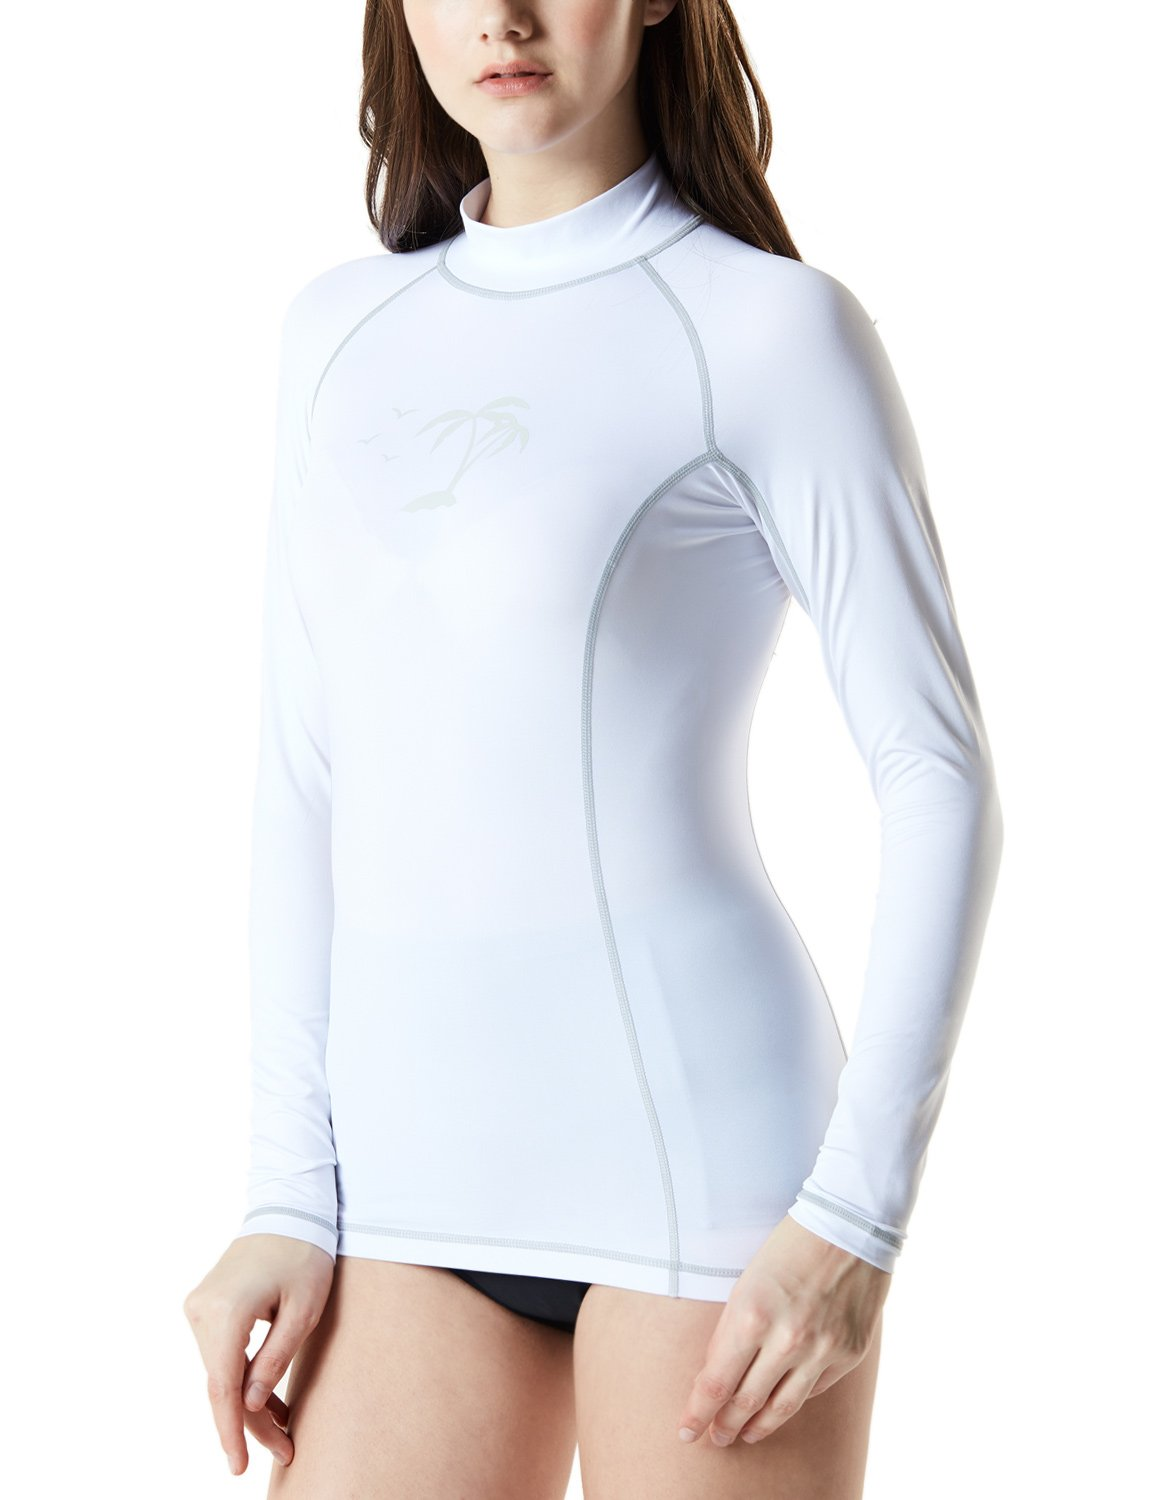 TSLA TM-FSR23-WHT_Large Women's UPF 50+ Slim-Fit Long Sleeve Athletic Rashguard FSR23